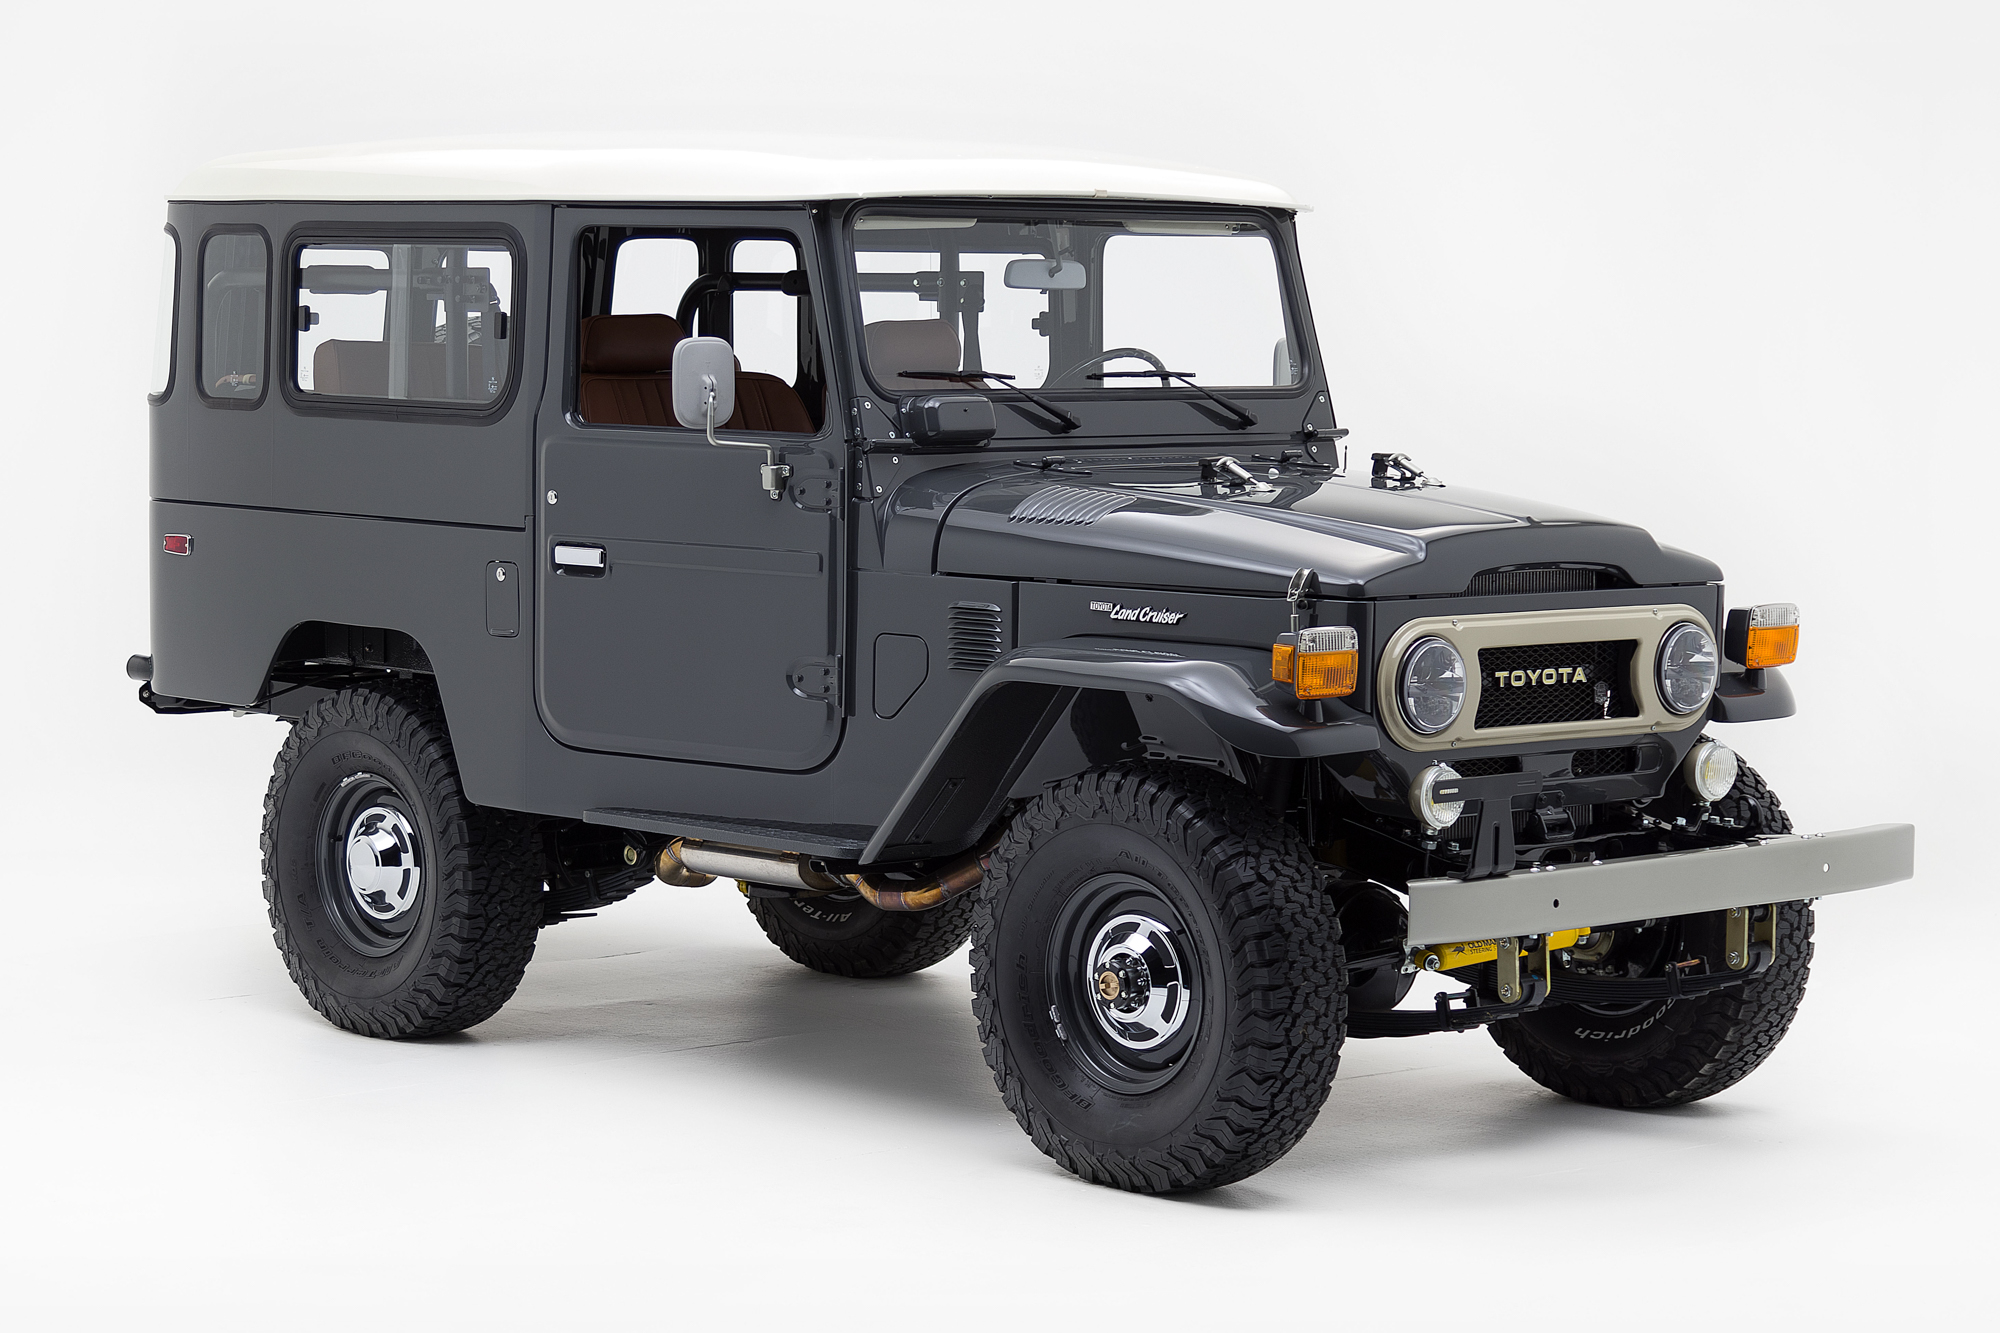 1978 Toyota Land Cruiser , SLATE GREY, VIN FJ4352930, MILEAGE 950